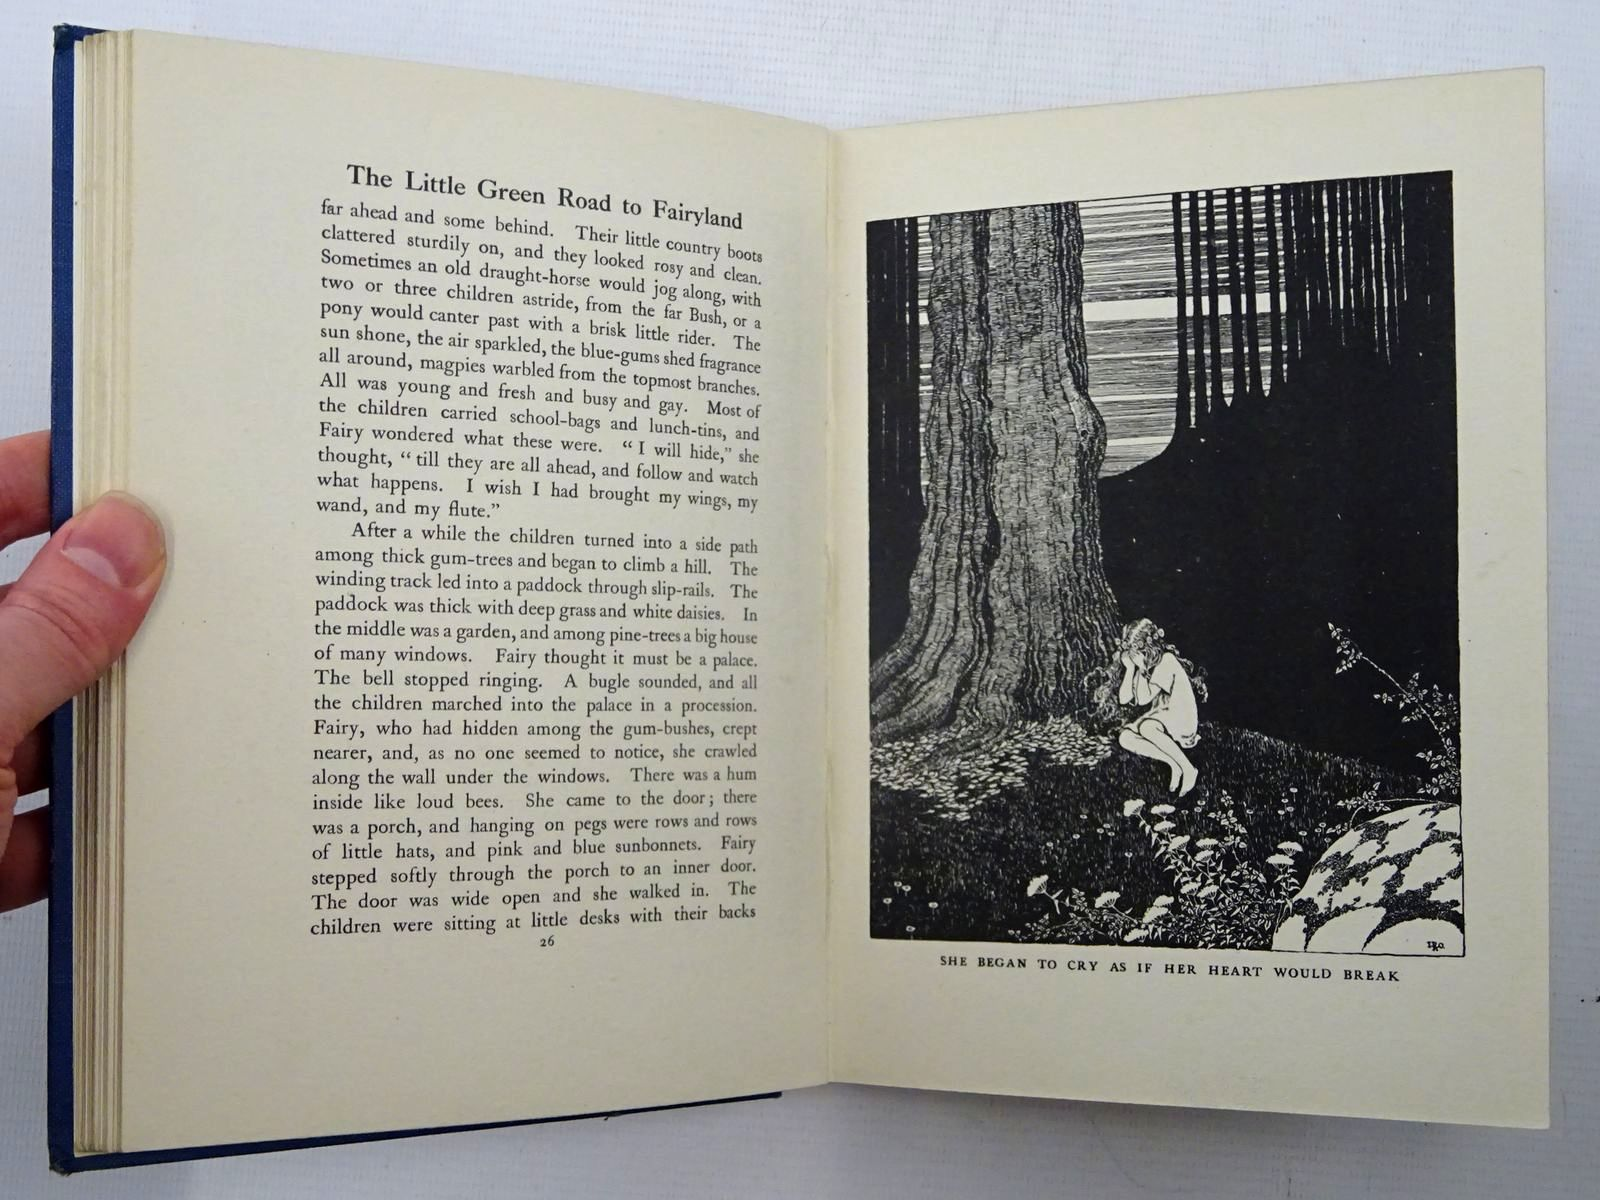 Photo of THE LITTLE GREEN ROAD TO FAIRYLAND written by Rentoul, Annie R. illustrated by Outhwaite, Ida Rentoul published by A. & C. Black Ltd. (STOCK CODE: 2125755)  for sale by Stella & Rose's Books